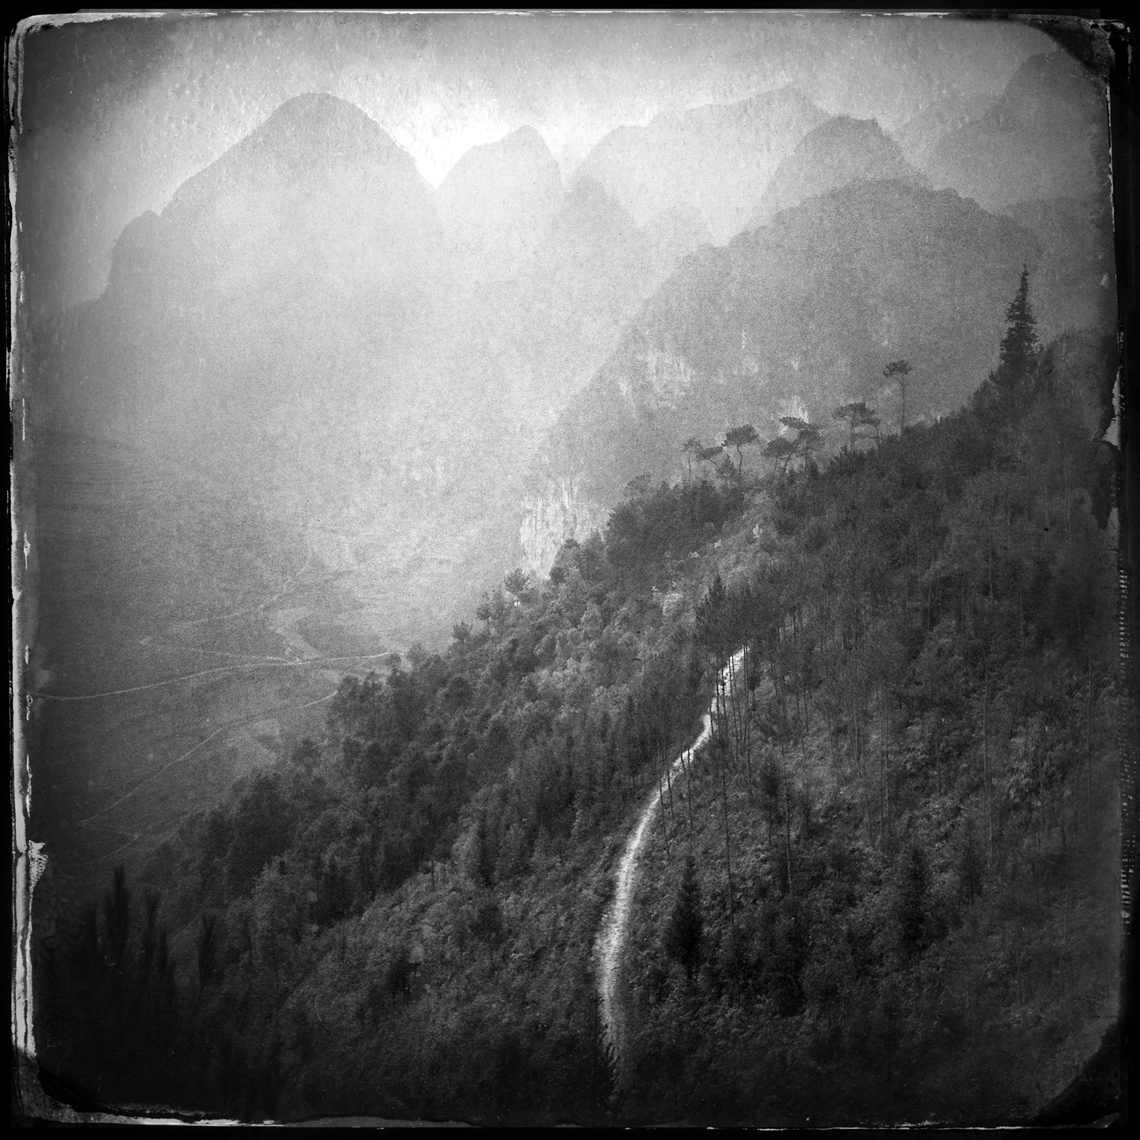 Jon Wyatt Photography - Mountain and forest scenery, Sri Lanka. Hipstamatic